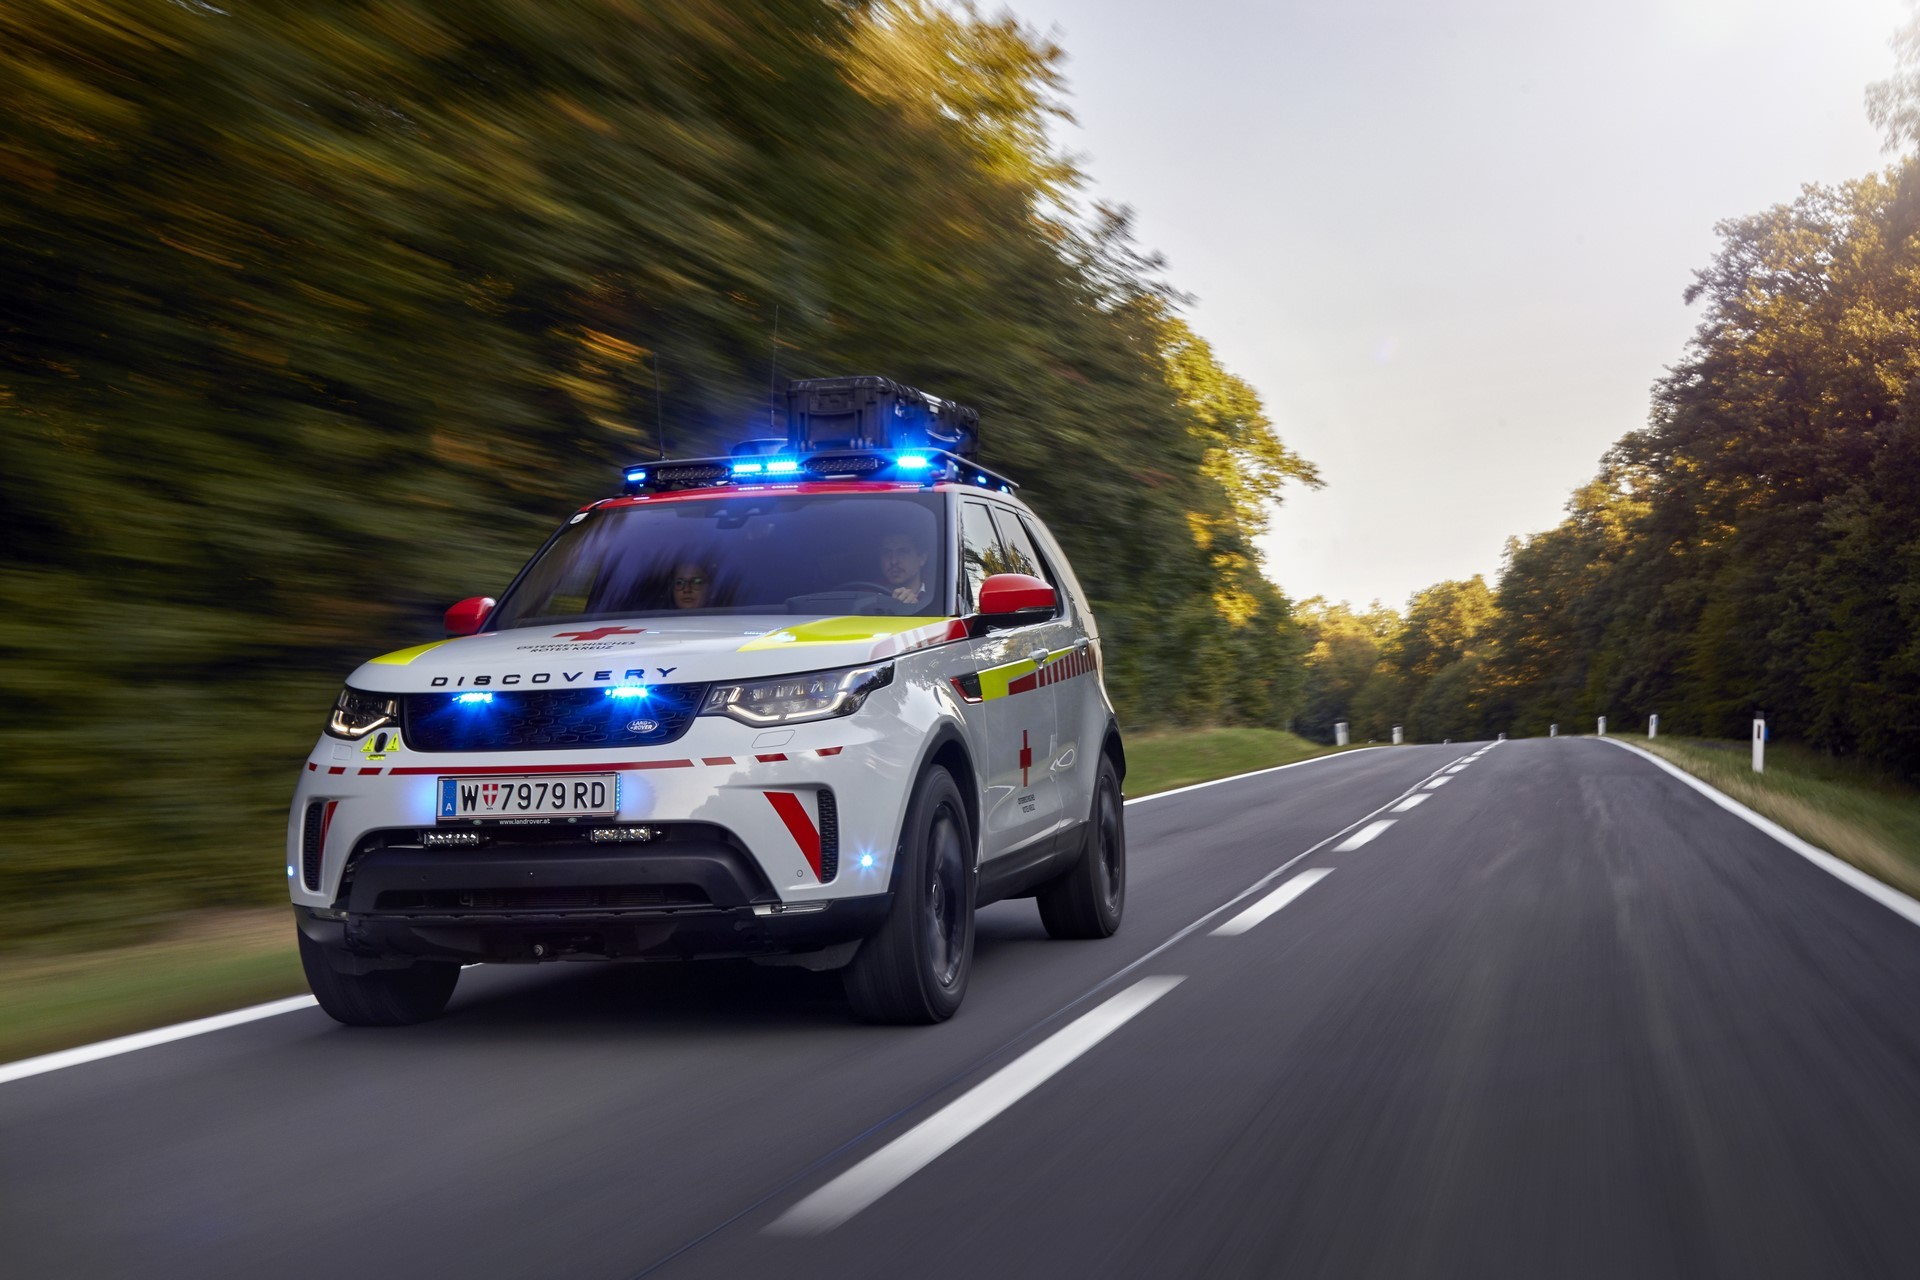 Land Rover Discovery Emergency Vehicle (6)